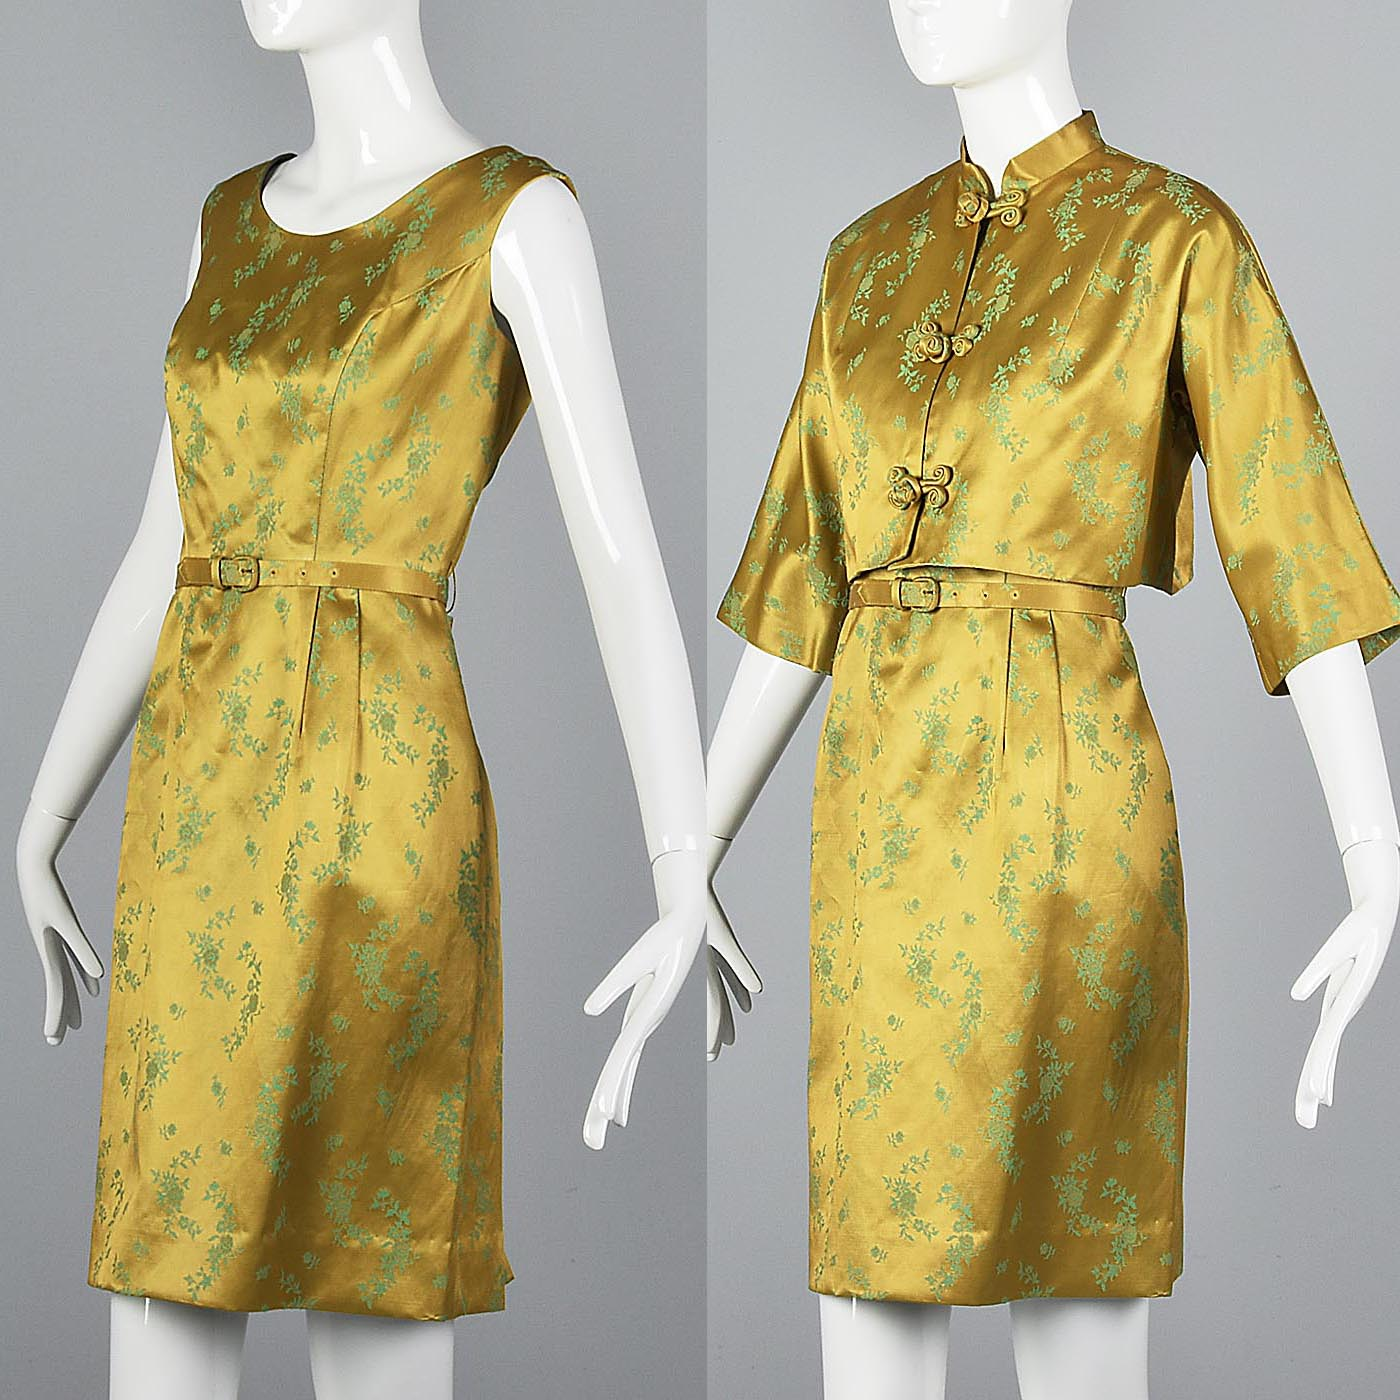 1960s Two Piece Dress  and Jacket Set in Mustard and Green Satin